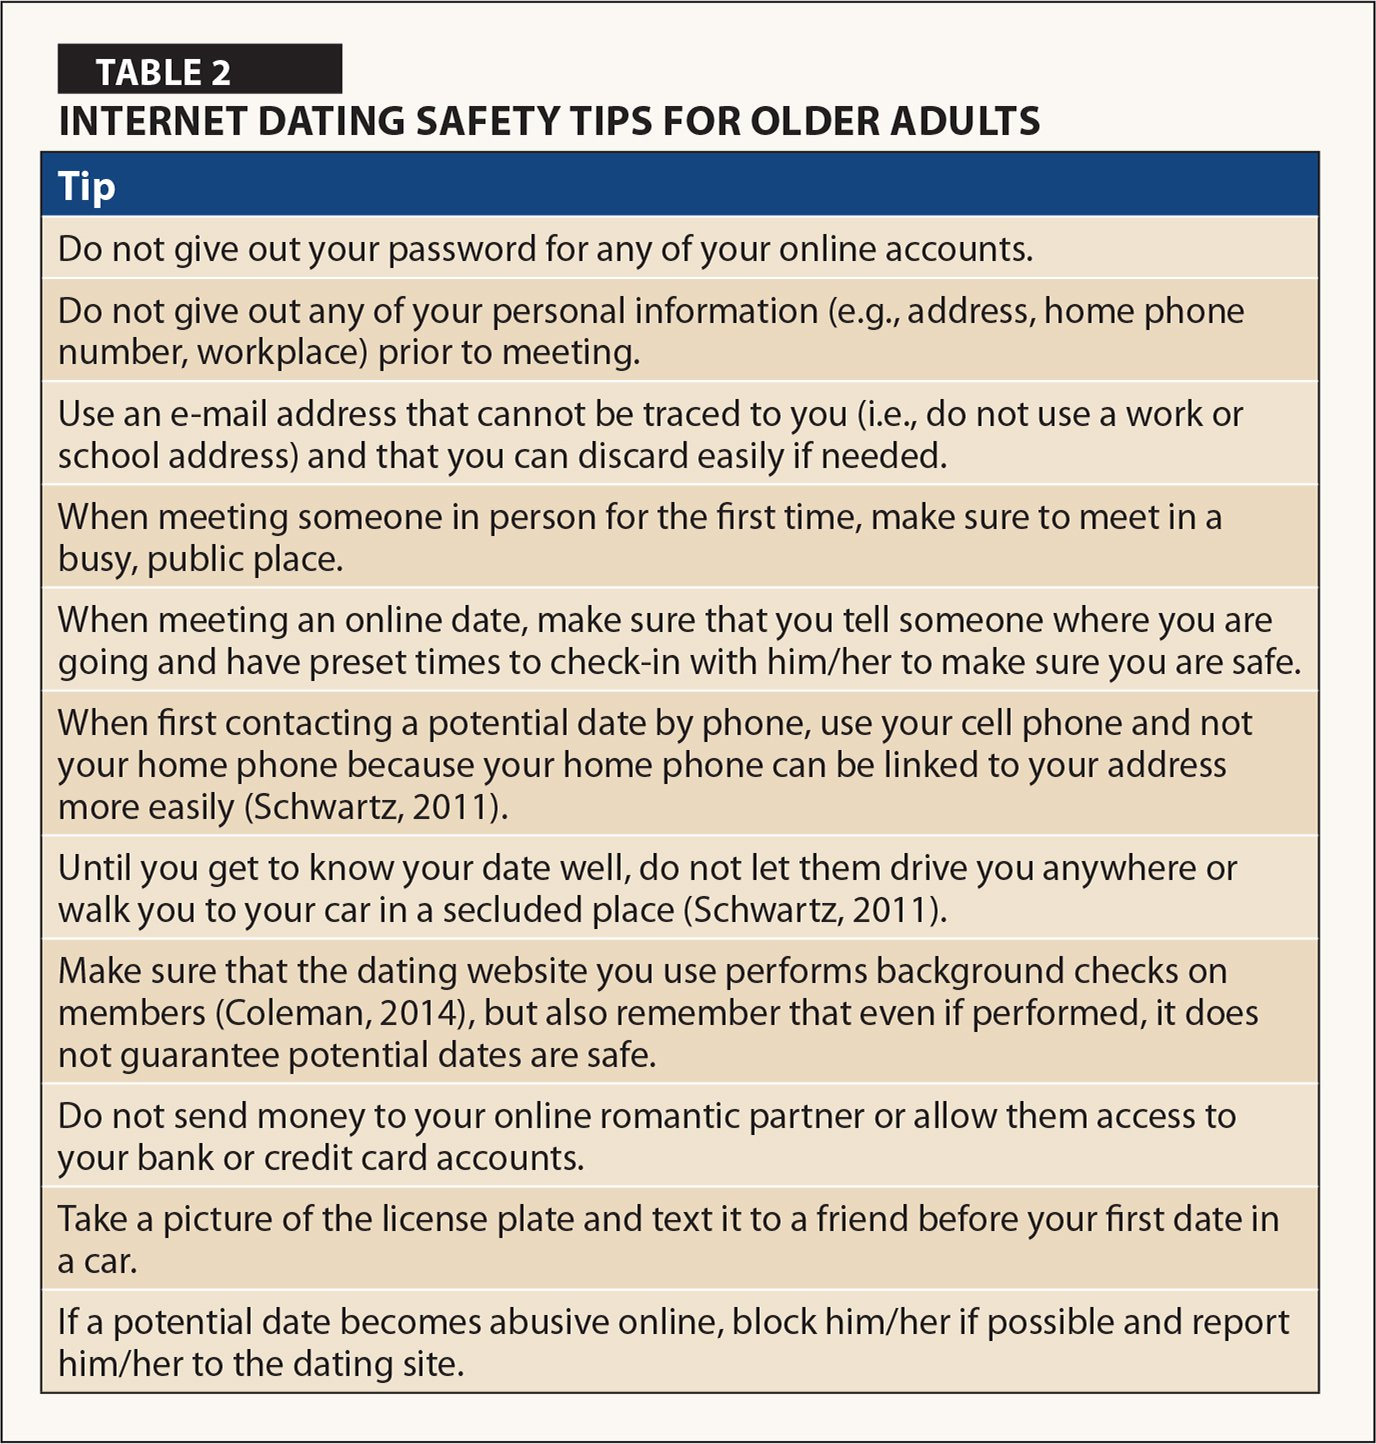 Internet dating information